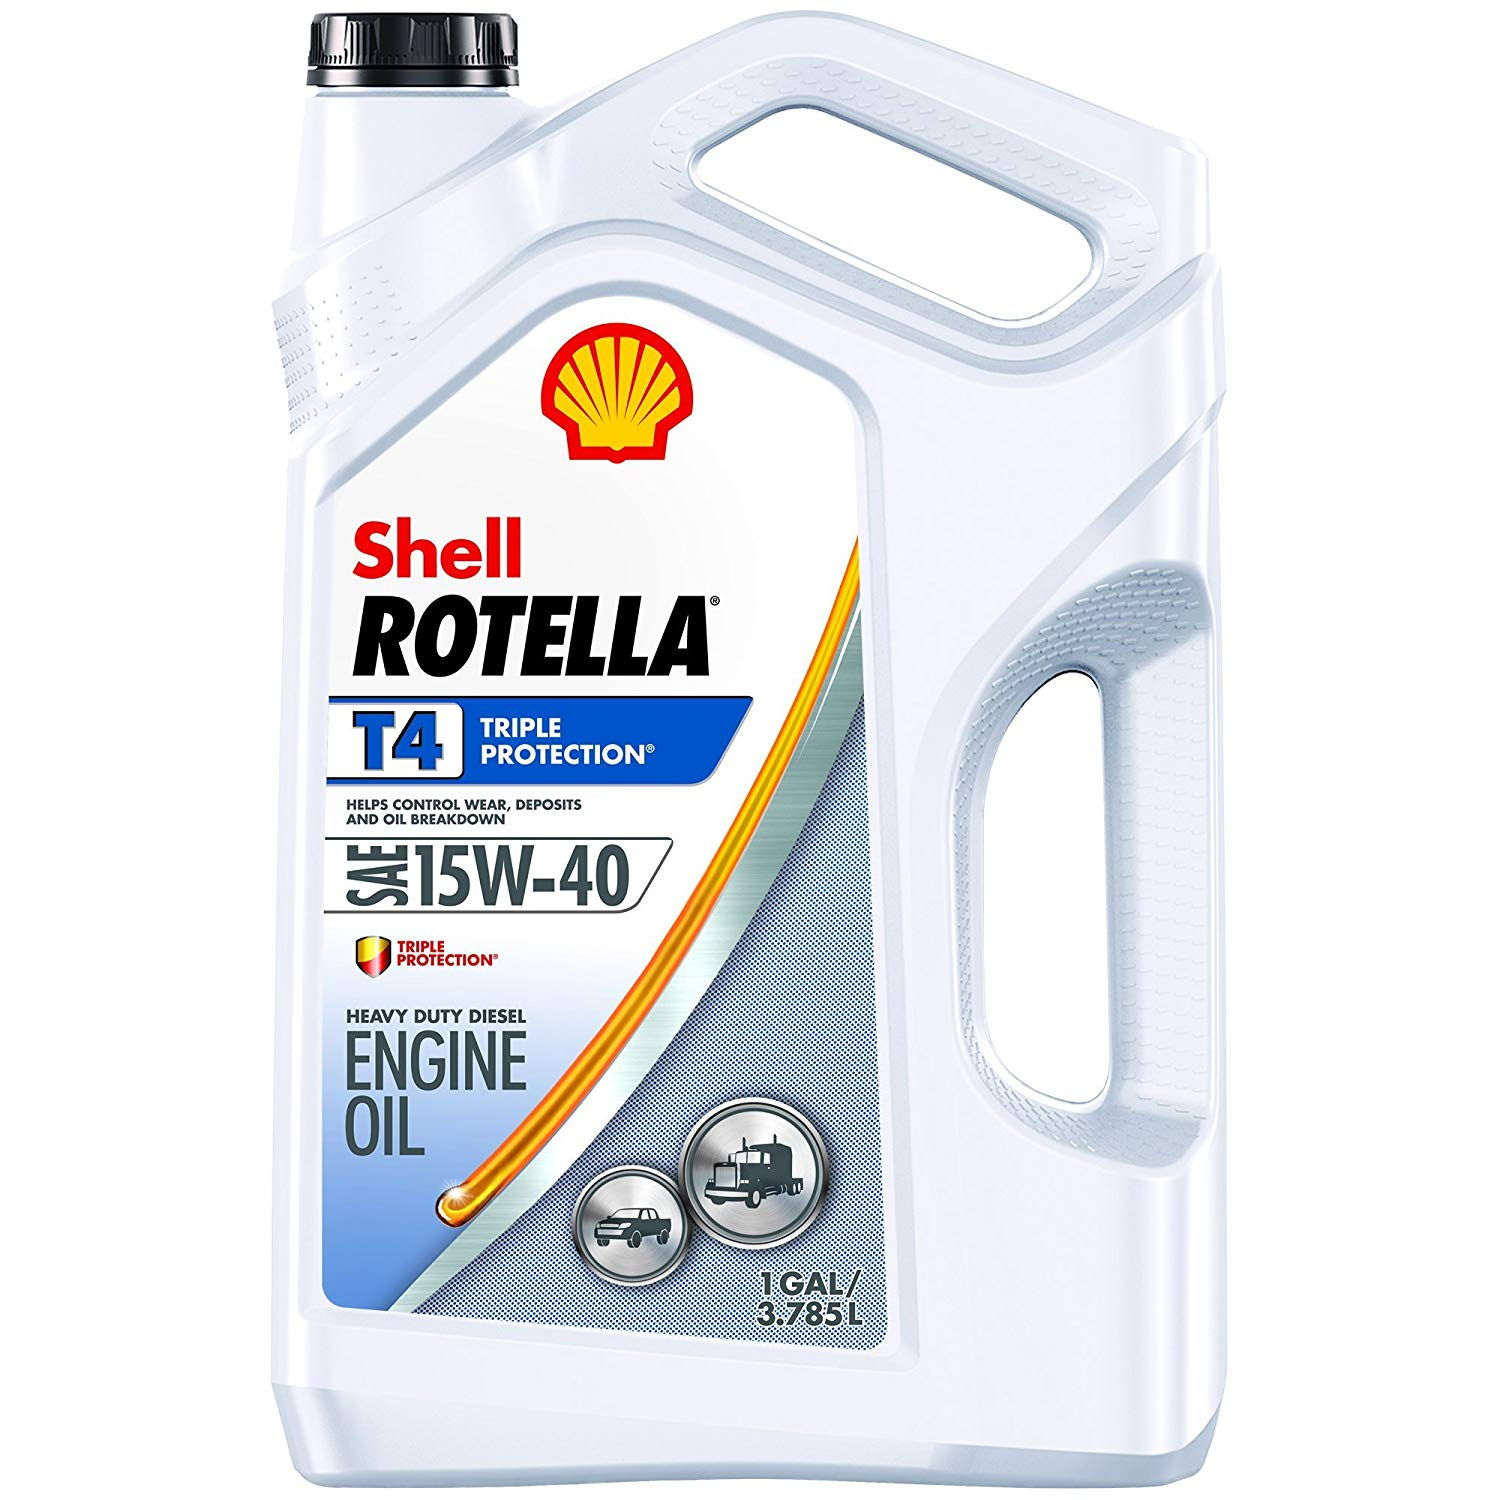 Shell Rotella T4 Triple Protection 15W-40